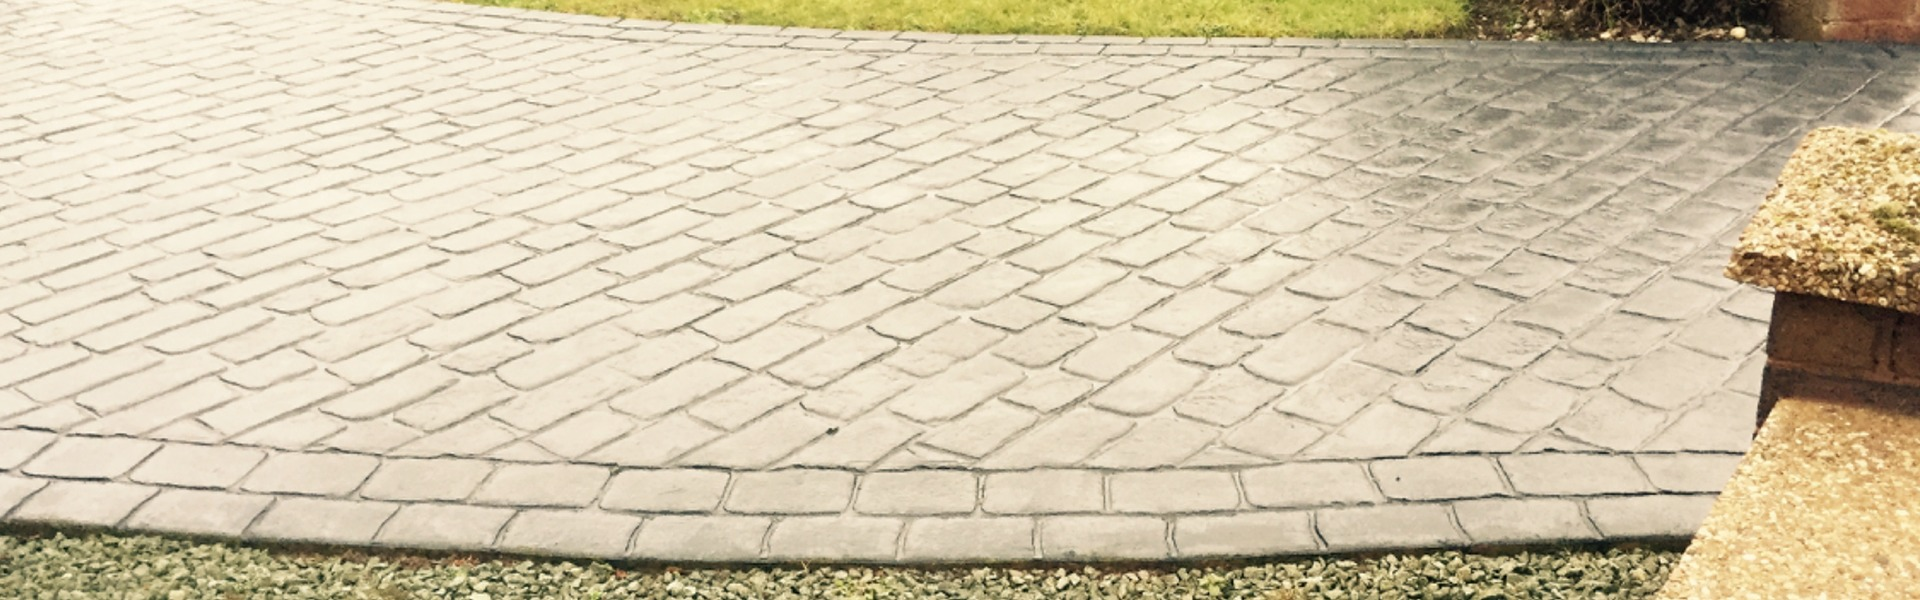 Block Paving Slide image